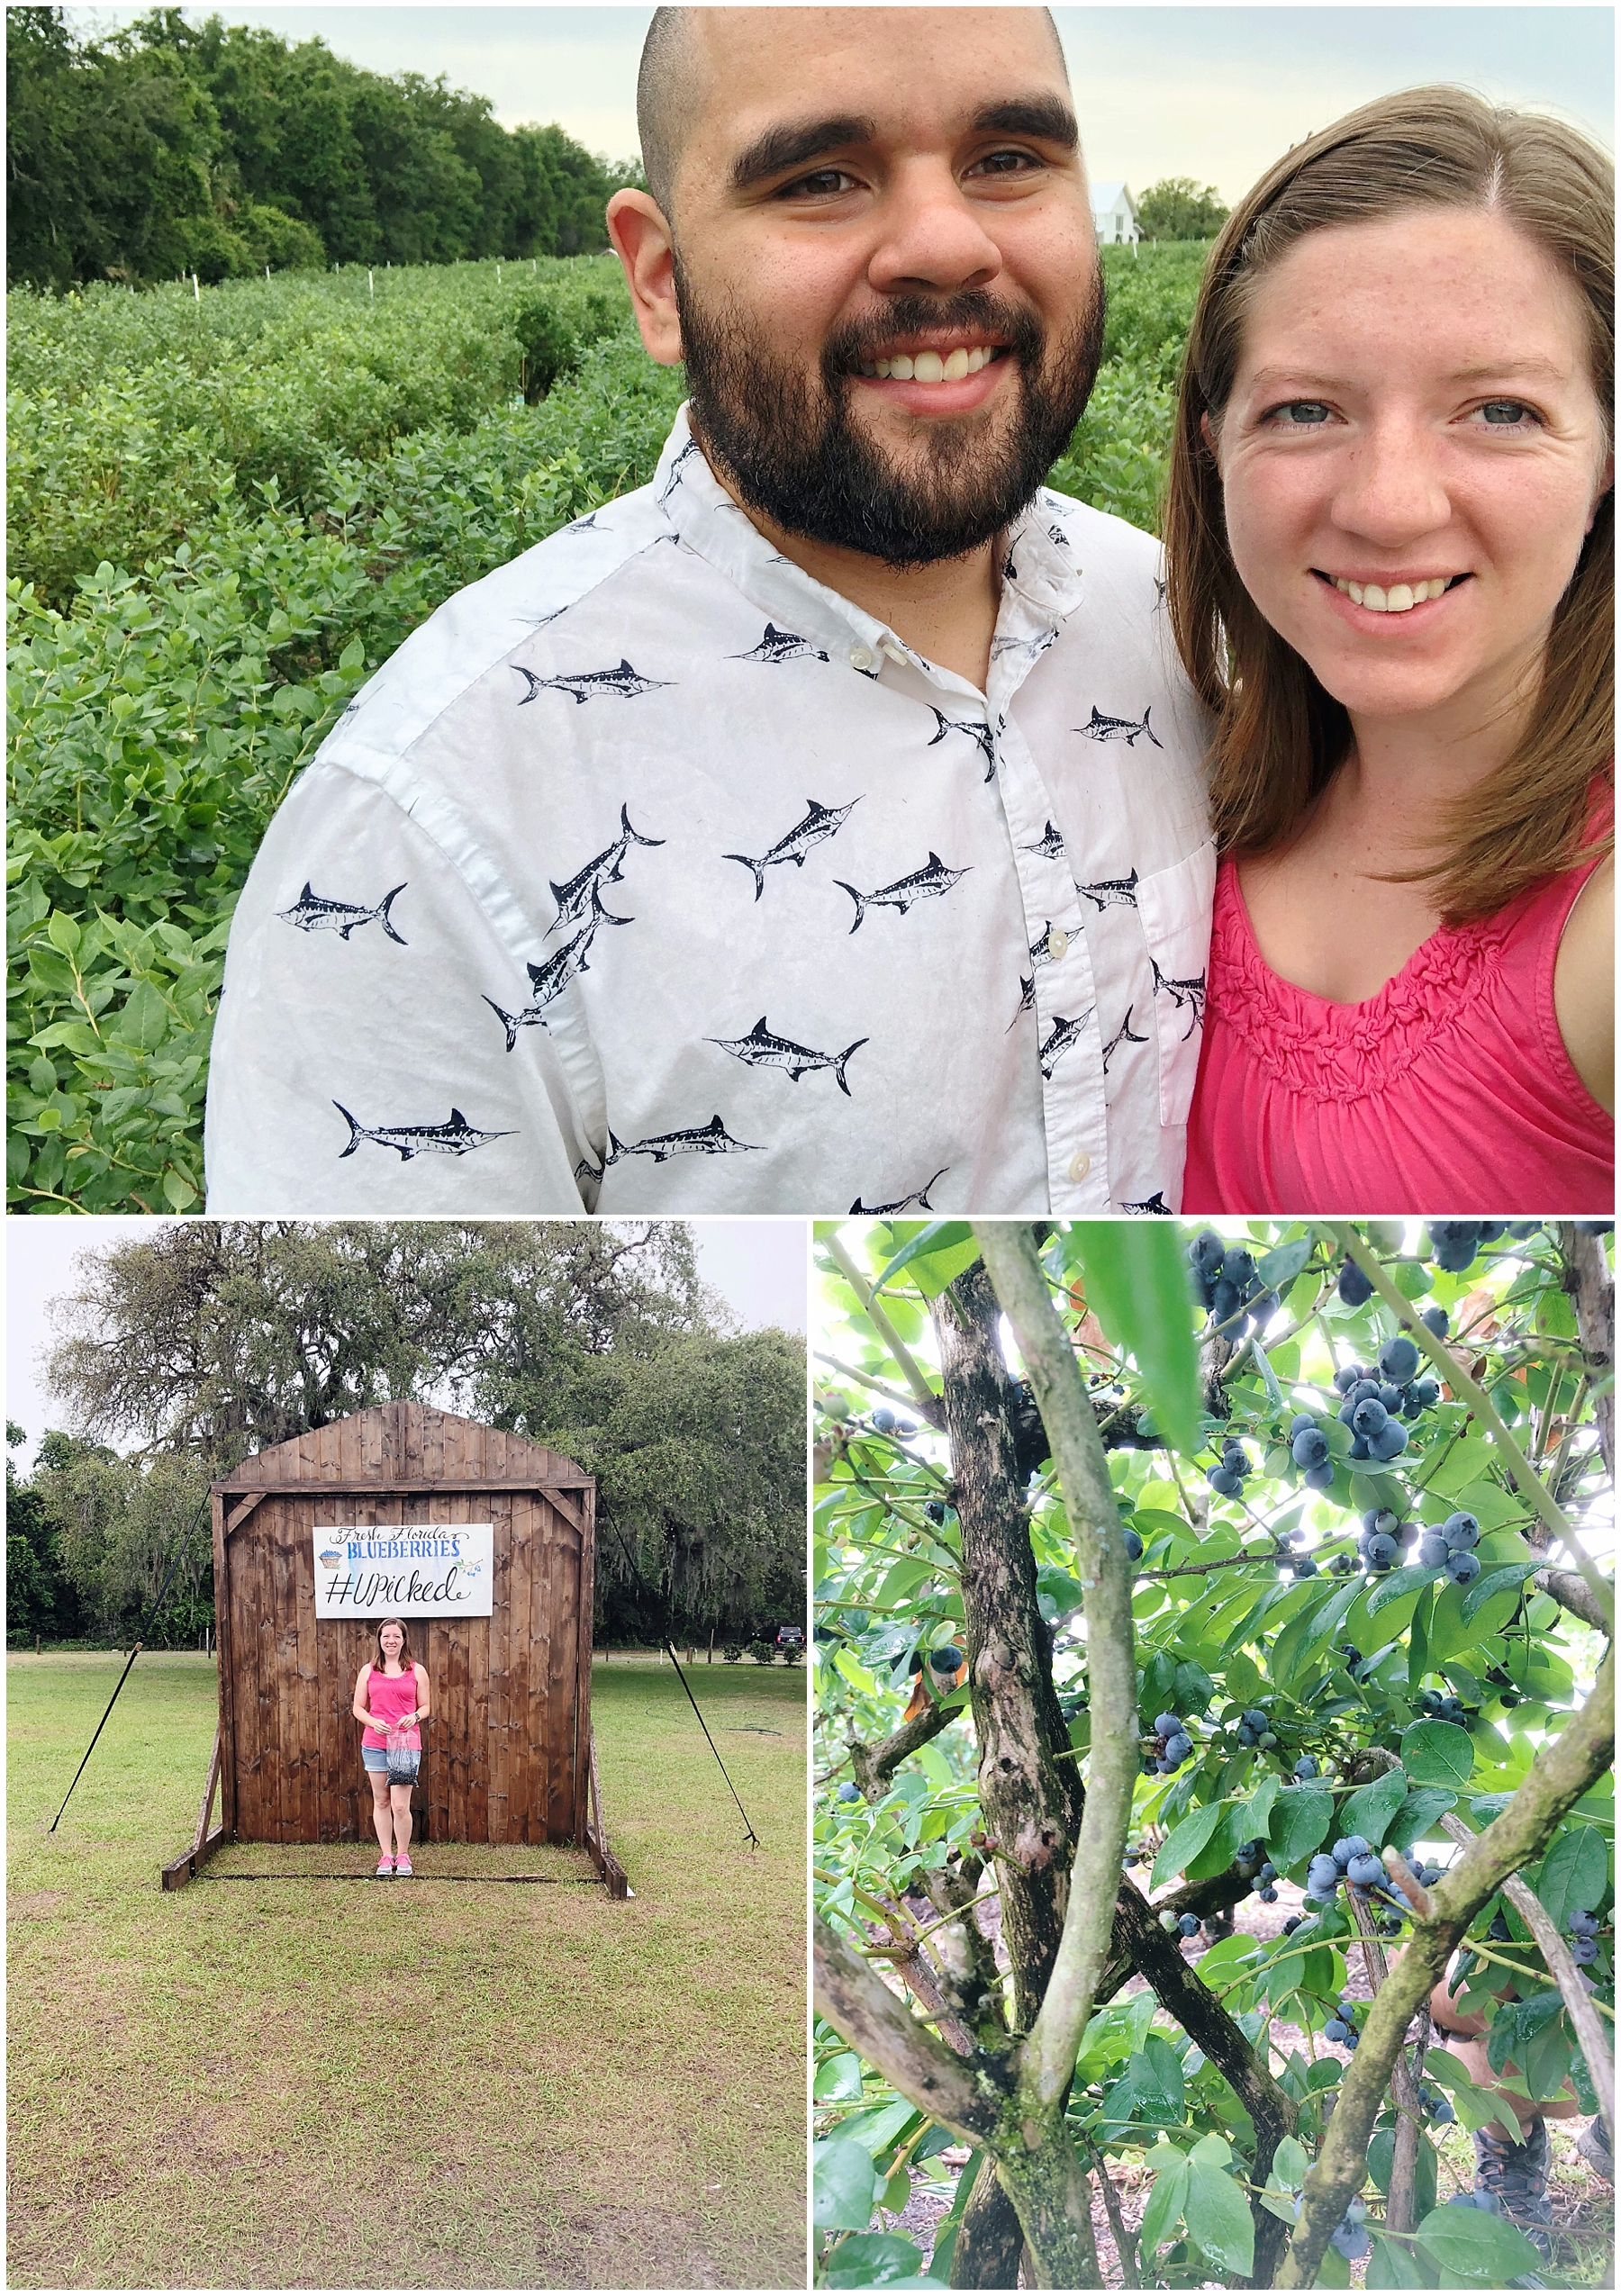 Andrew and I had the BEST morning blue berry picking together at Ever After Farms. I loved getting to have time off to spend with him! This was a much needed date, and it was so much fun!